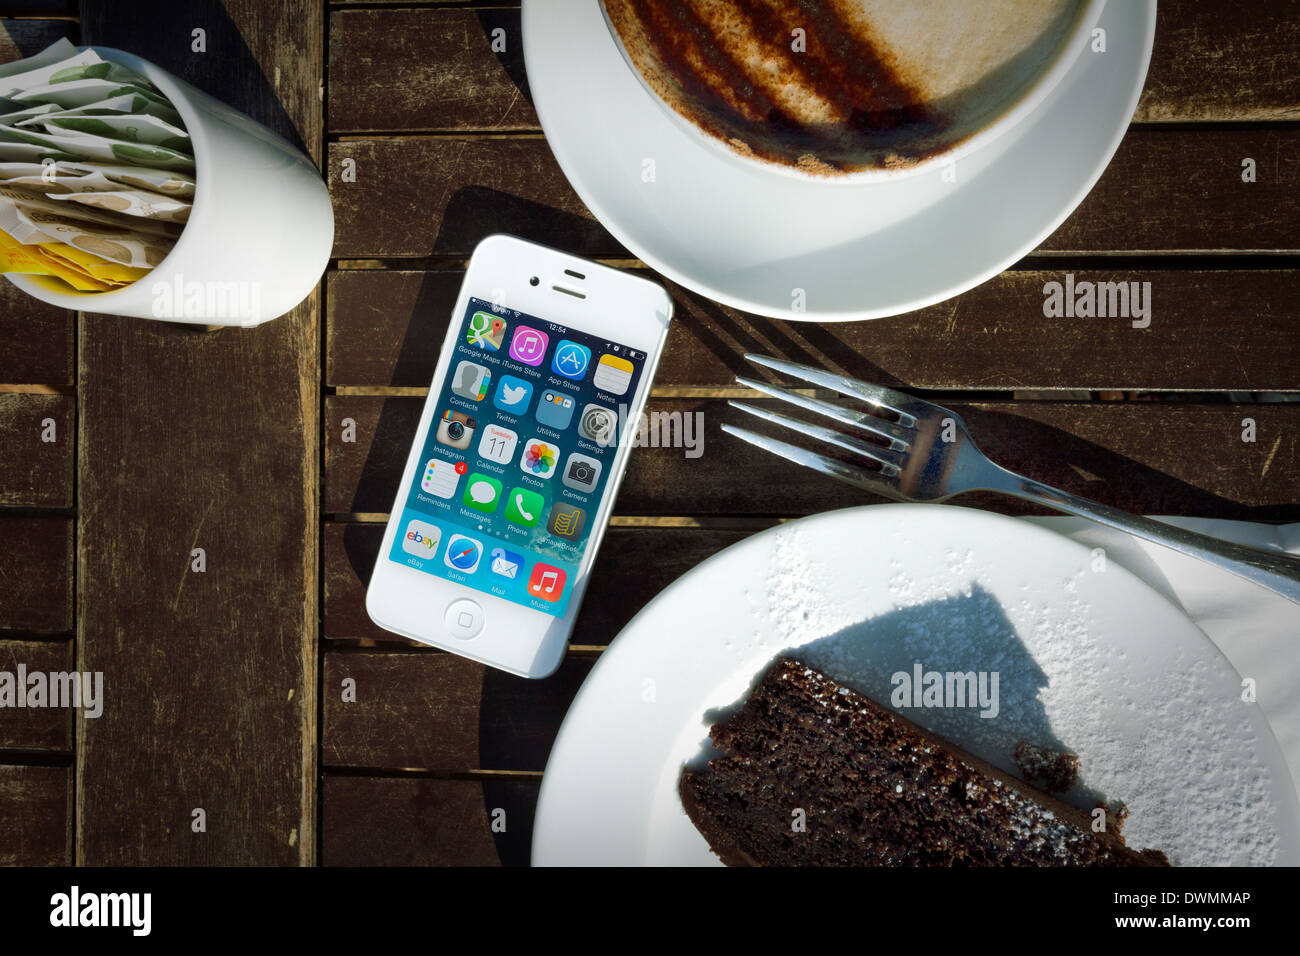 iPhone 4s On Table With Cake And Cappuccino Stock Photo